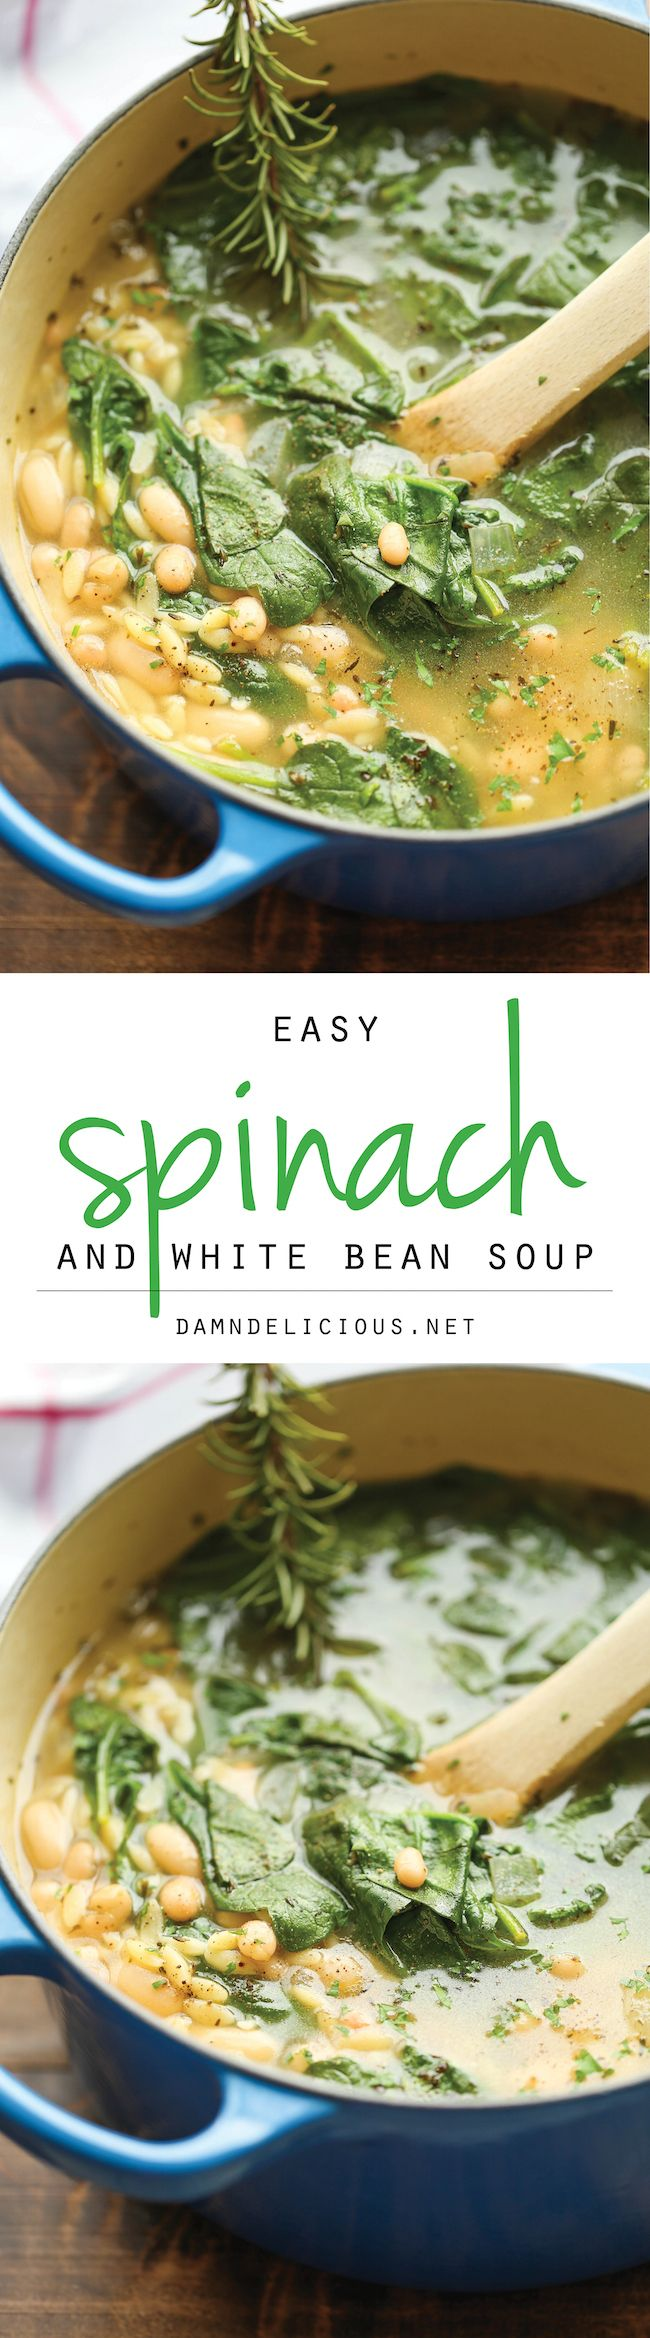 Spinach and White Bean Soup - A healthy and hearty, comforting soup ...